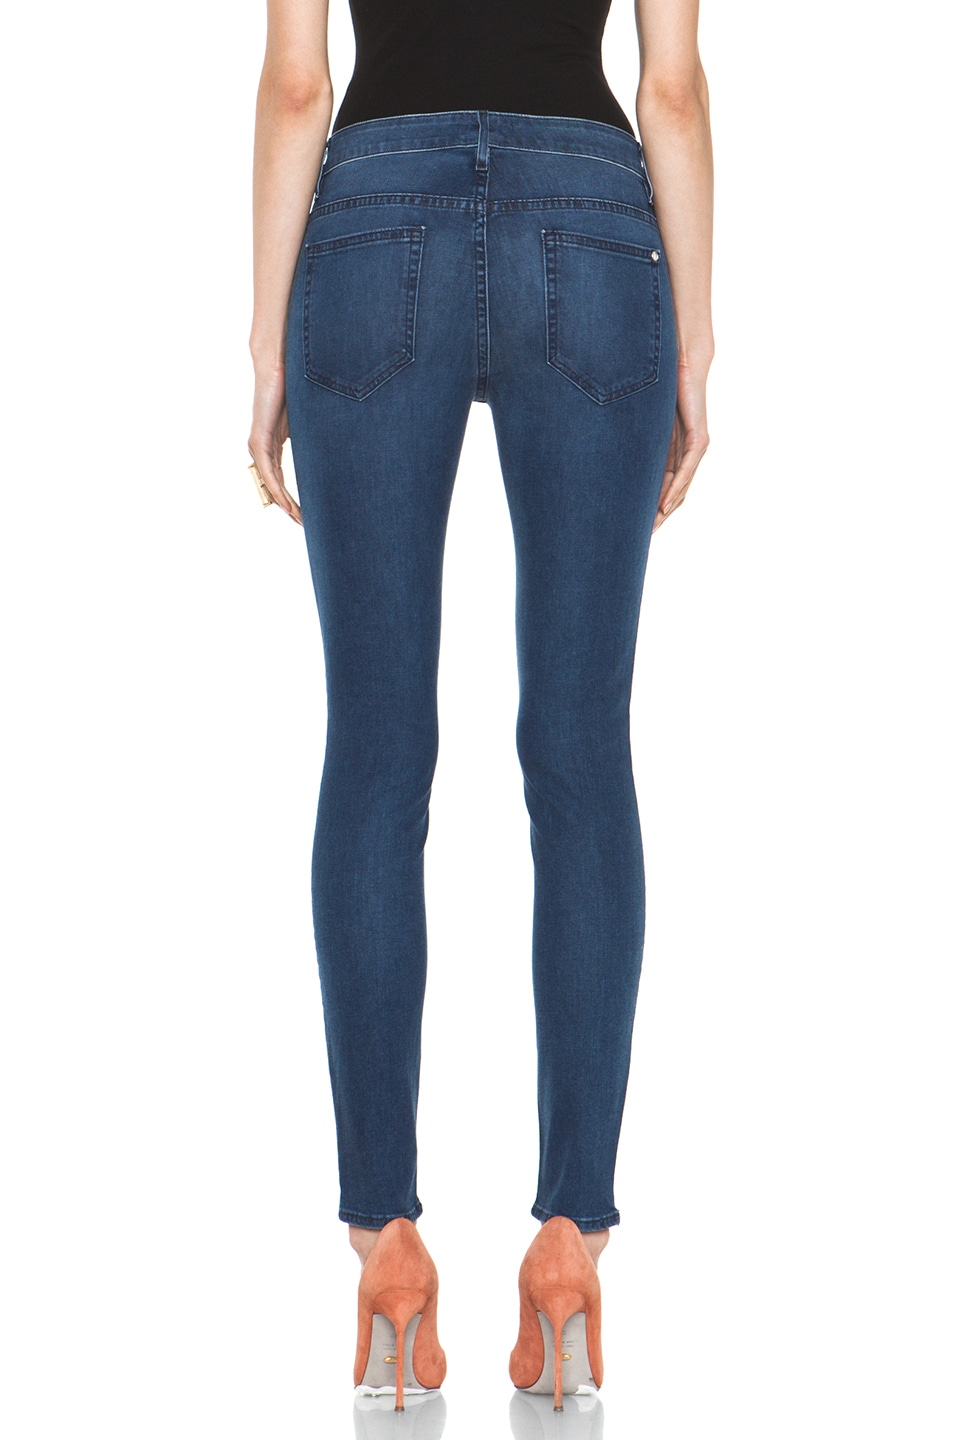 Image 4 of Koral November Twelve Coated High Rise Skinny in 12 Months